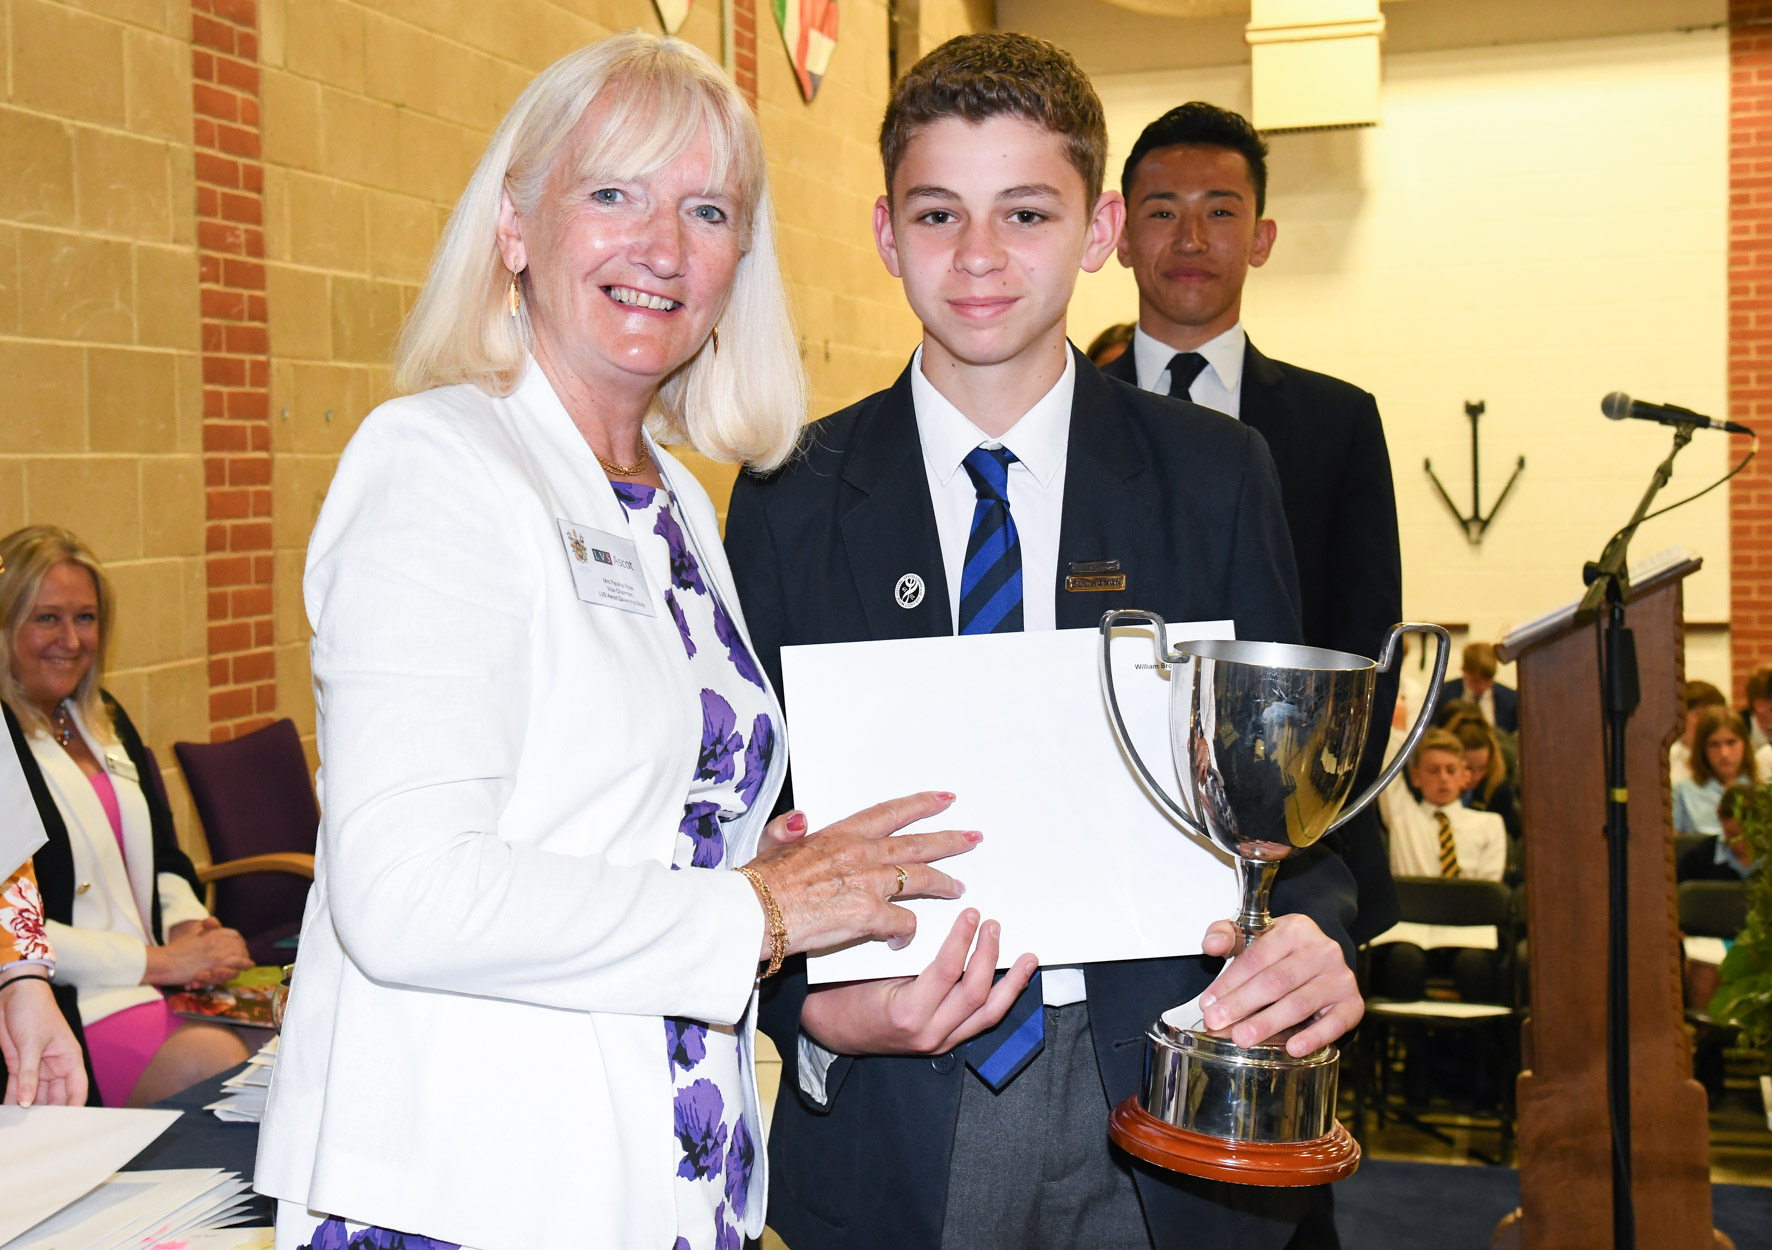 08.07.19. Year 9 student William Brooke collects his three awards at President's Day having been given the gift of confidence from the school according to his mot